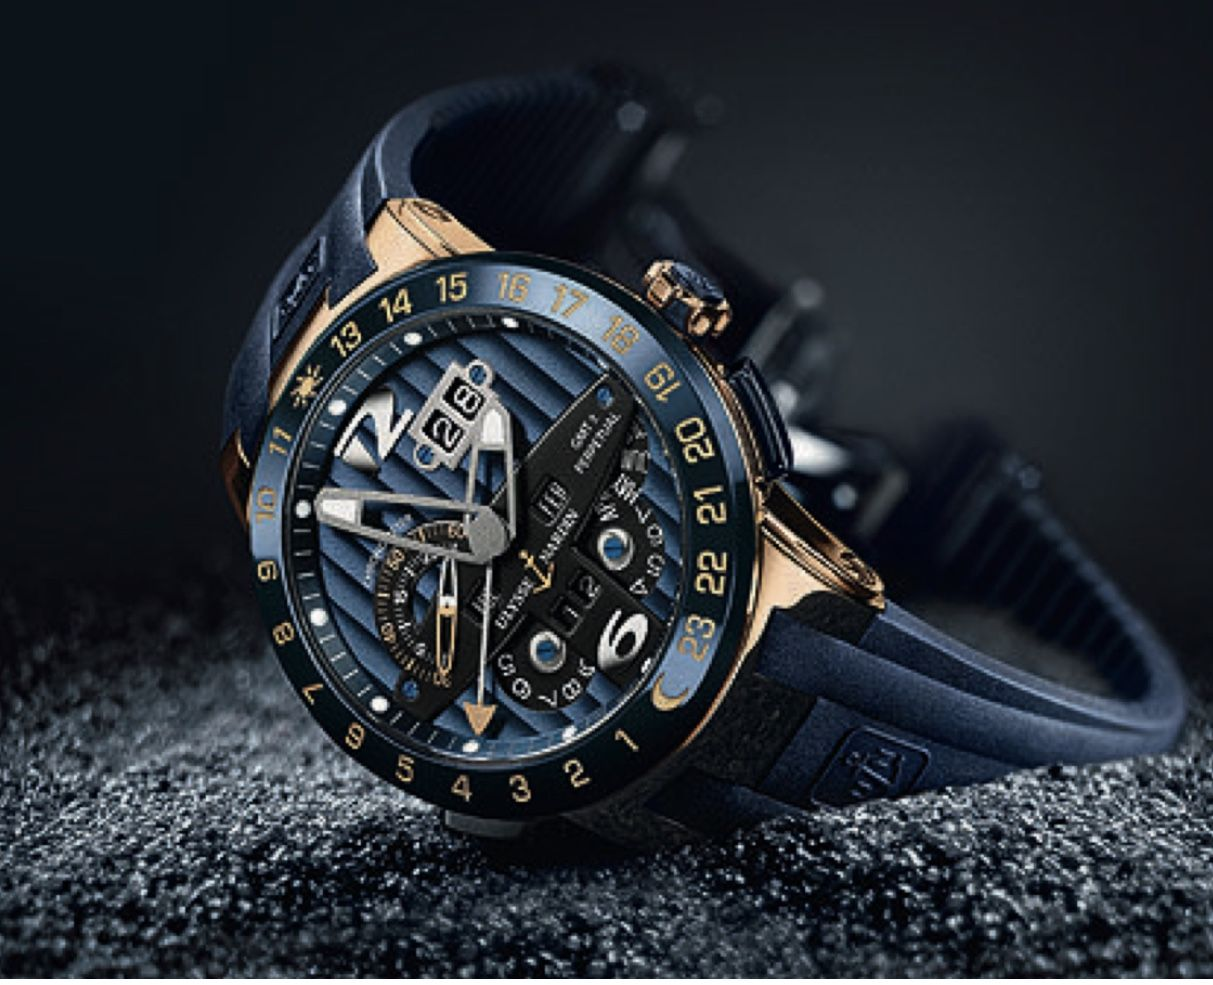 Watches photography justaboutwatches ulysse nardin pinterest